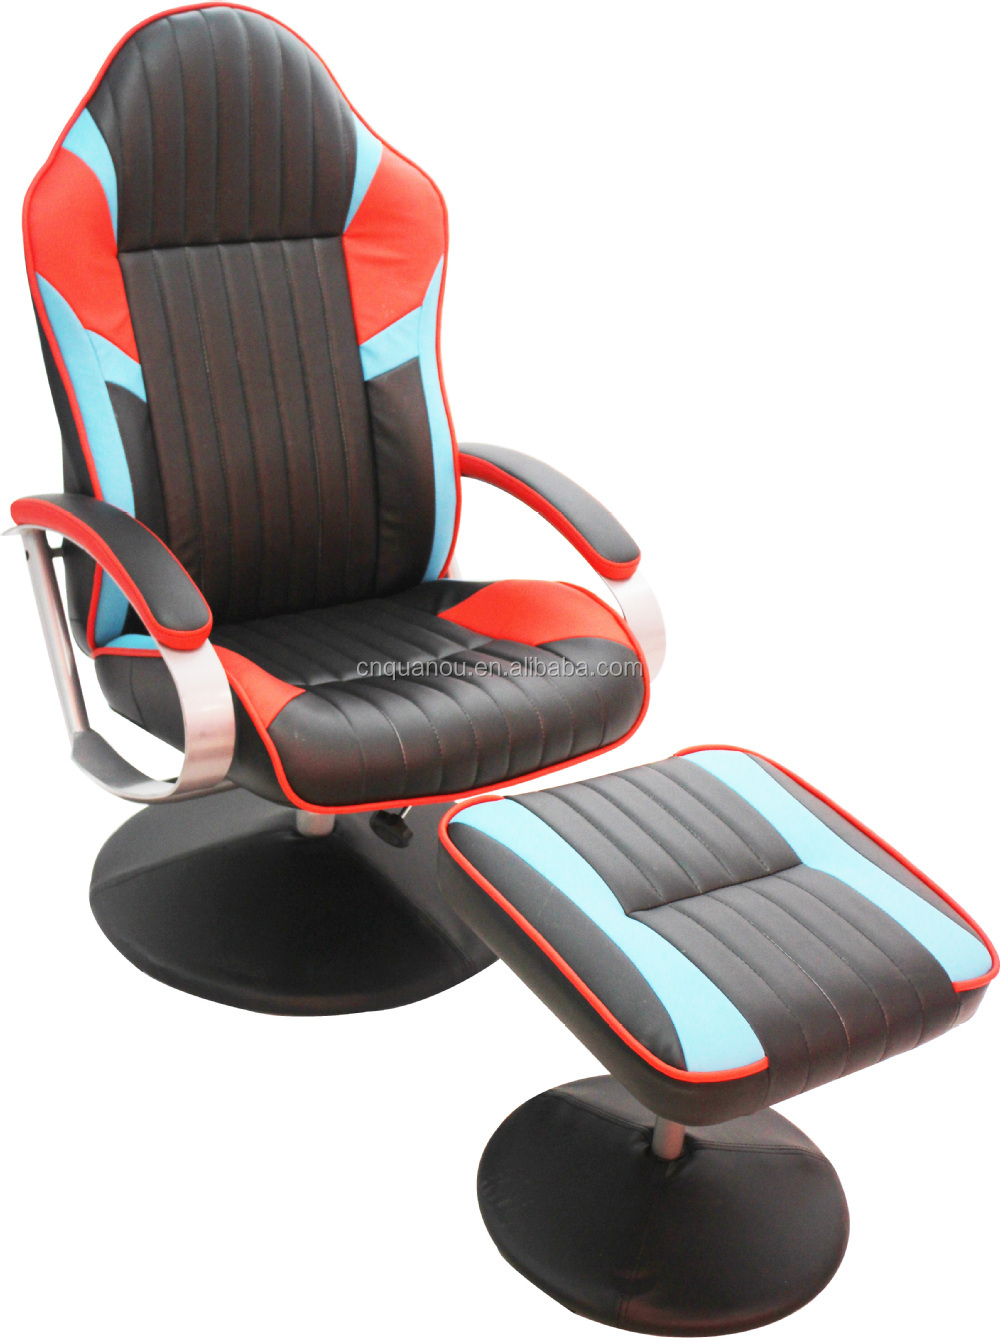 workwell racing recliner with ottoman office chair car chair gaming chair  sc 1 st  Alibaba & Workwell Racing Recliner With Ottoman Office Chair Car Chair ... islam-shia.org